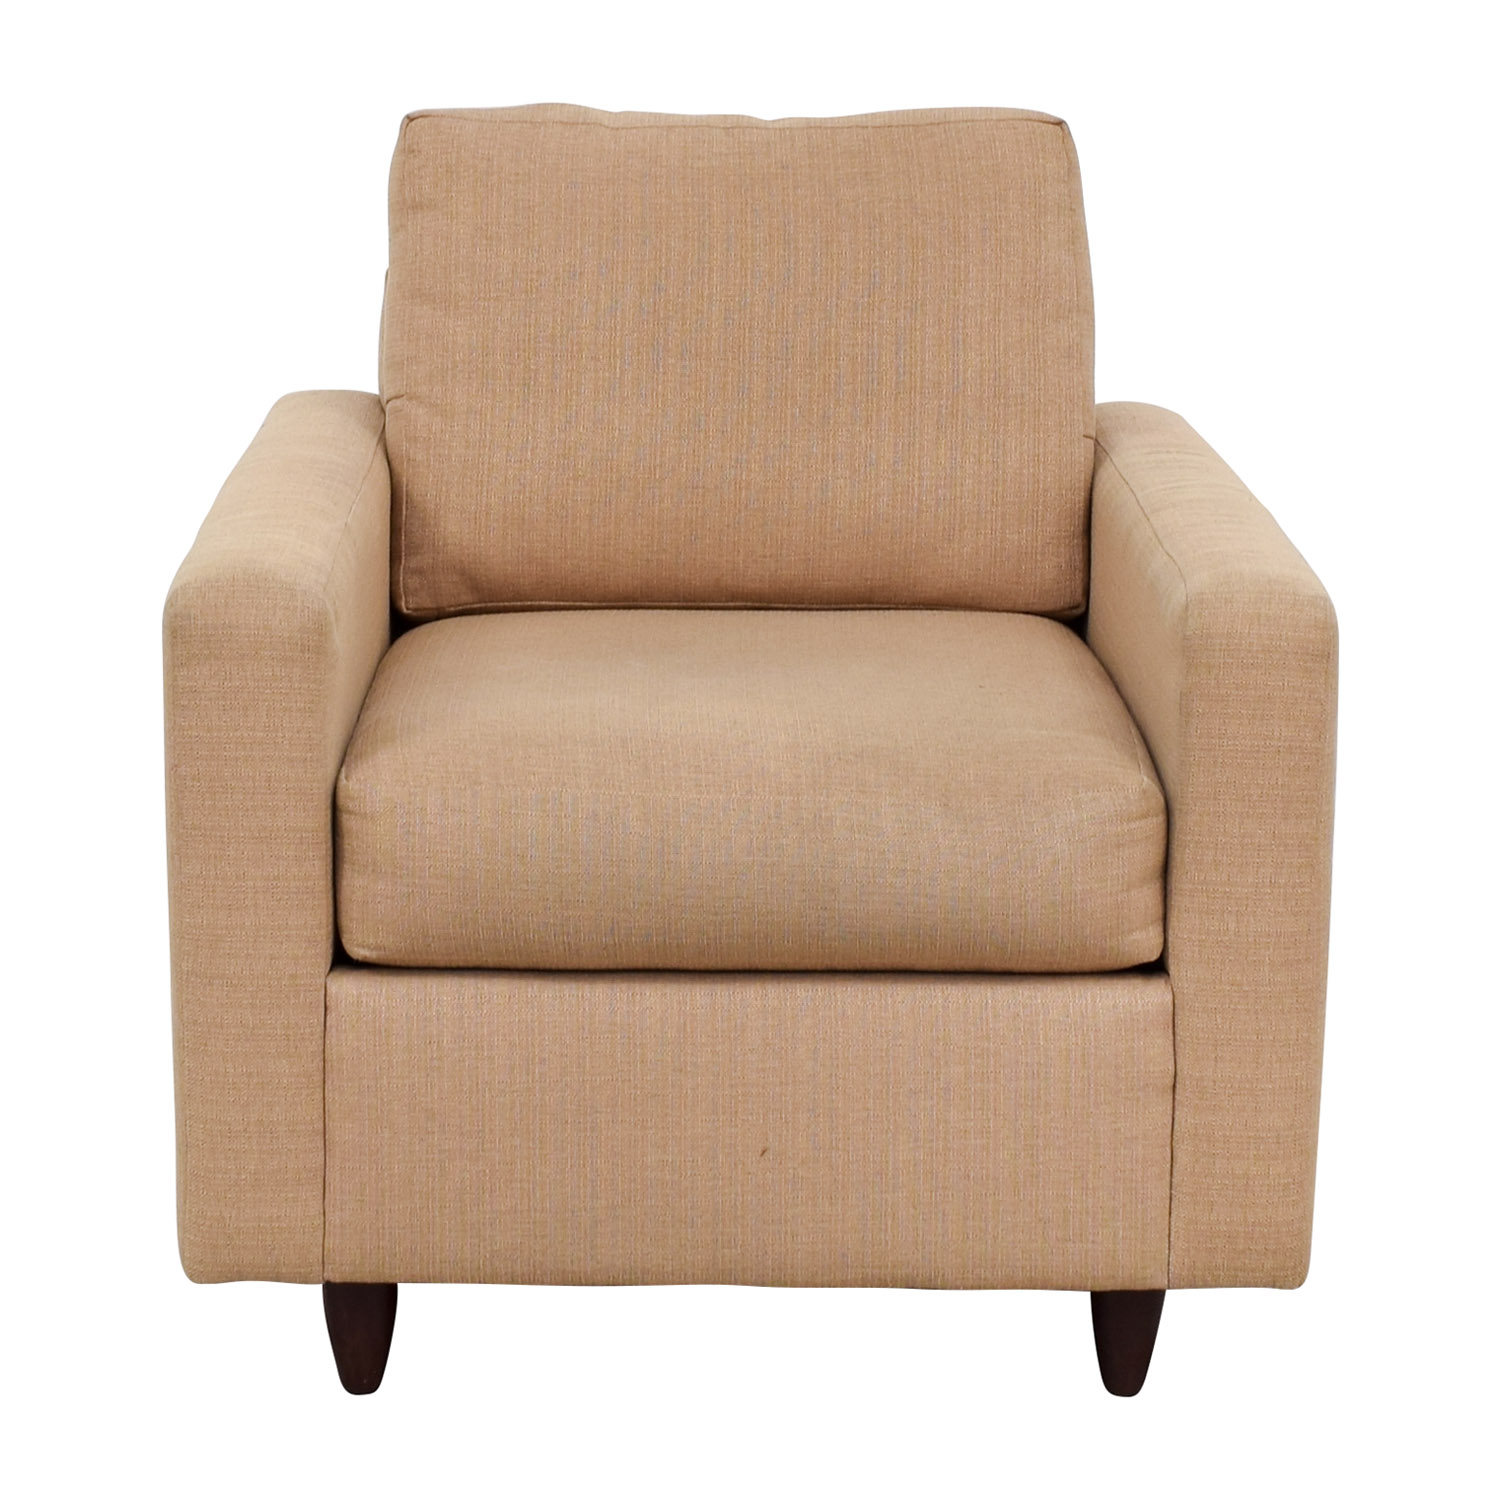 Jensen-Lewis Accent Chair / Chairs